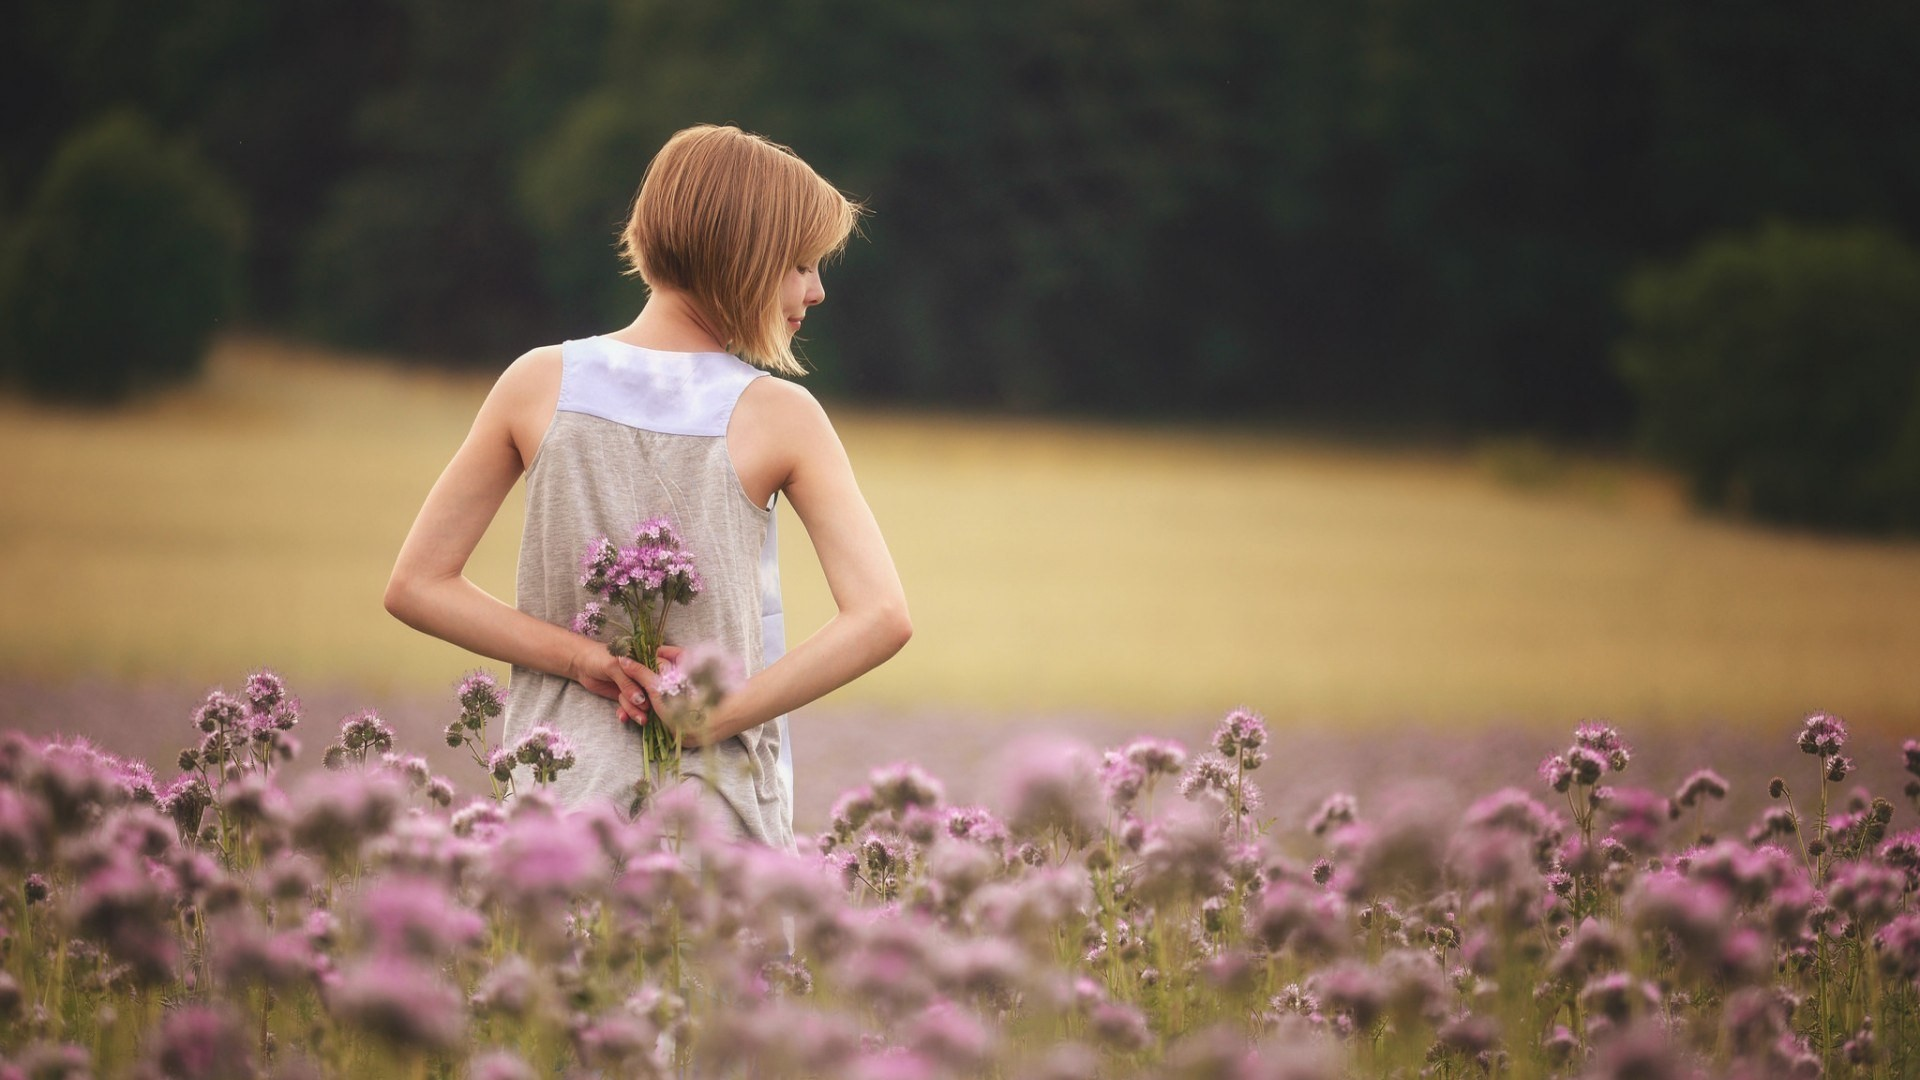 girl with flowers standing in field hd girls 4k